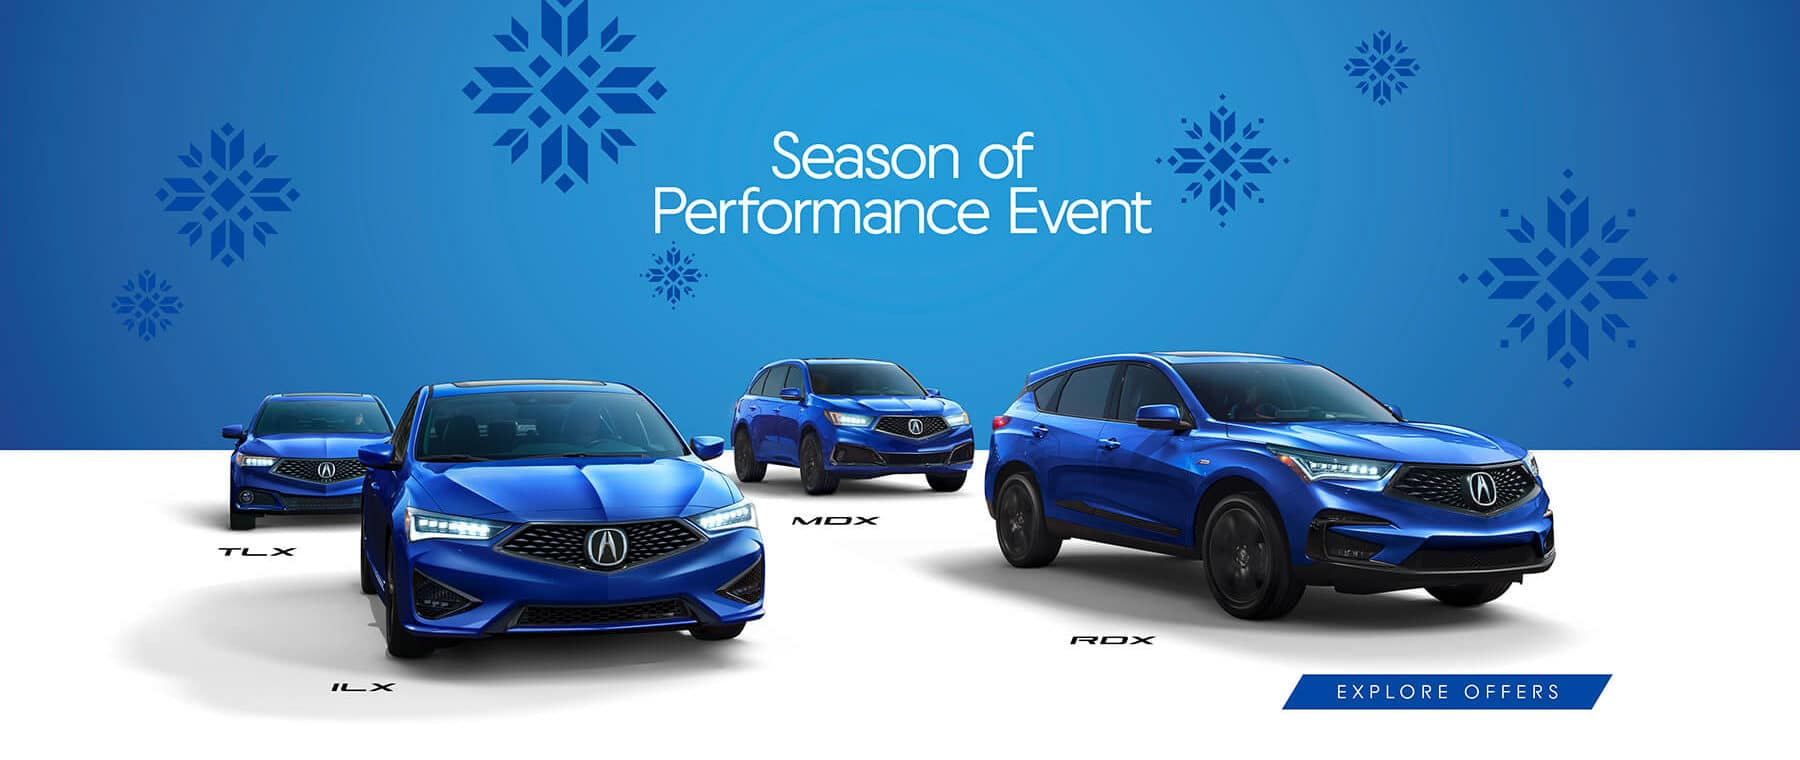 2019 Acura Season of Performance Event at Your Kansas City Acura Dealers